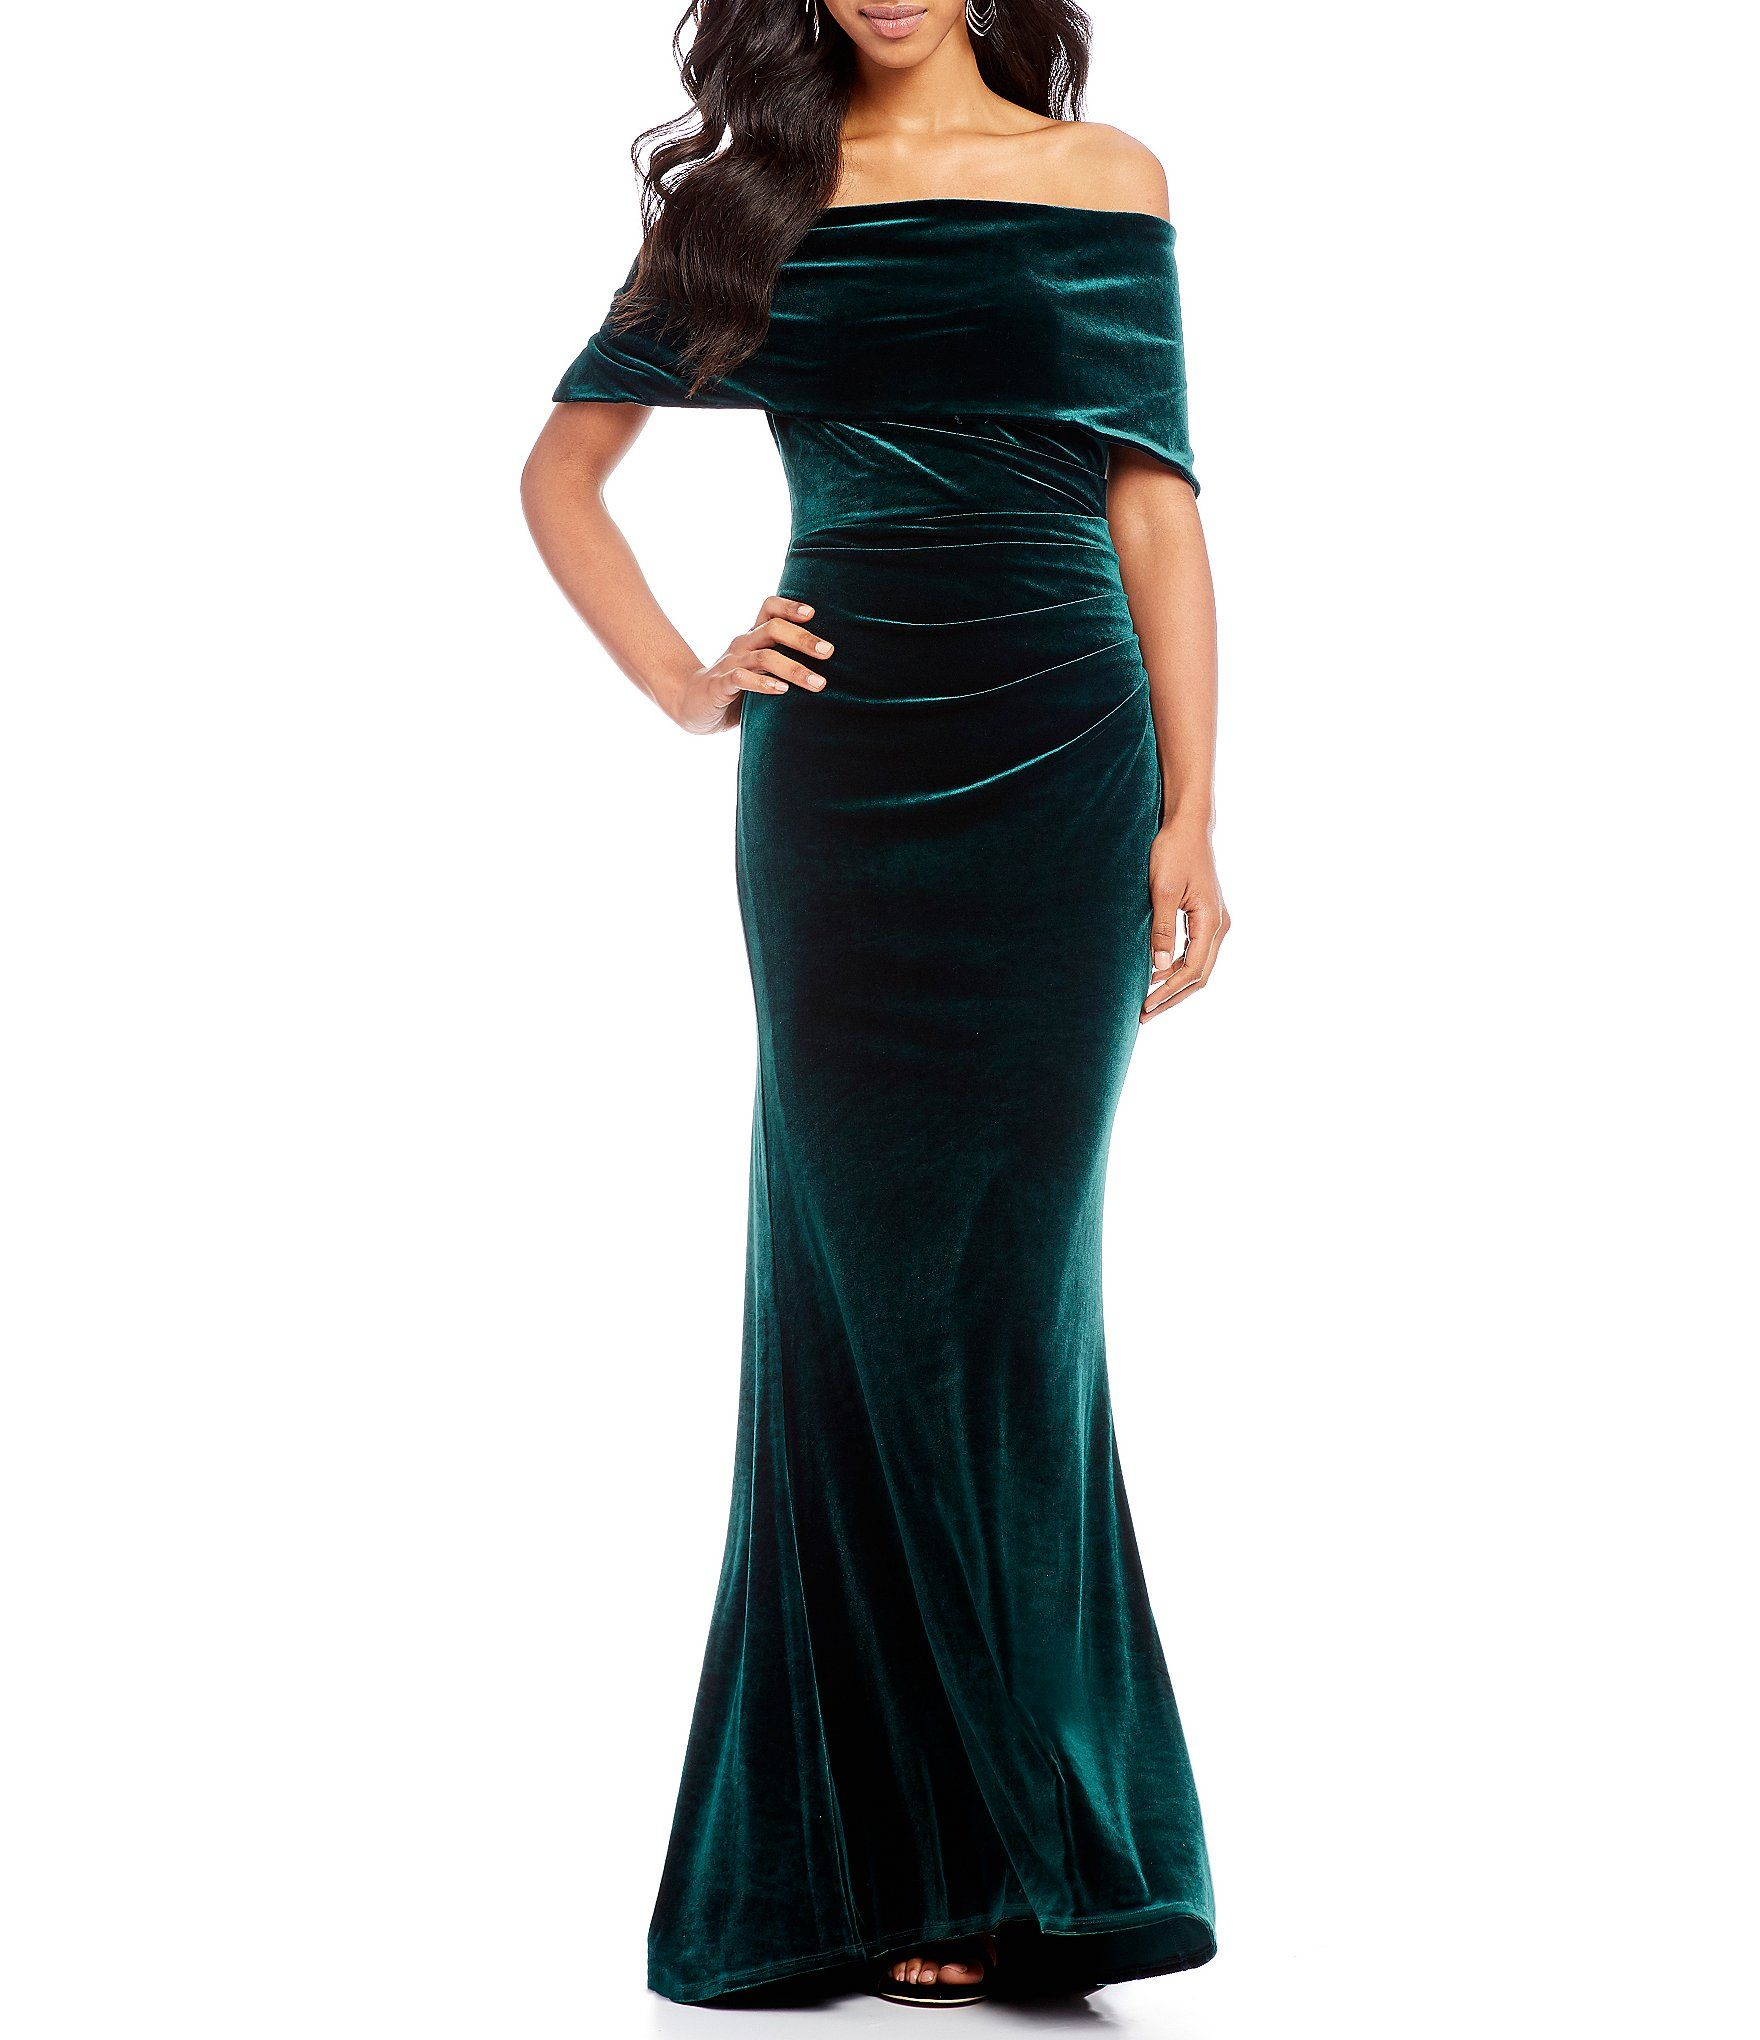 29d79dfd284 Shop for Vince Camuto Off the Shoulder Velvet Gown at Dillards.com. Visit  Dillards.com to find clothing